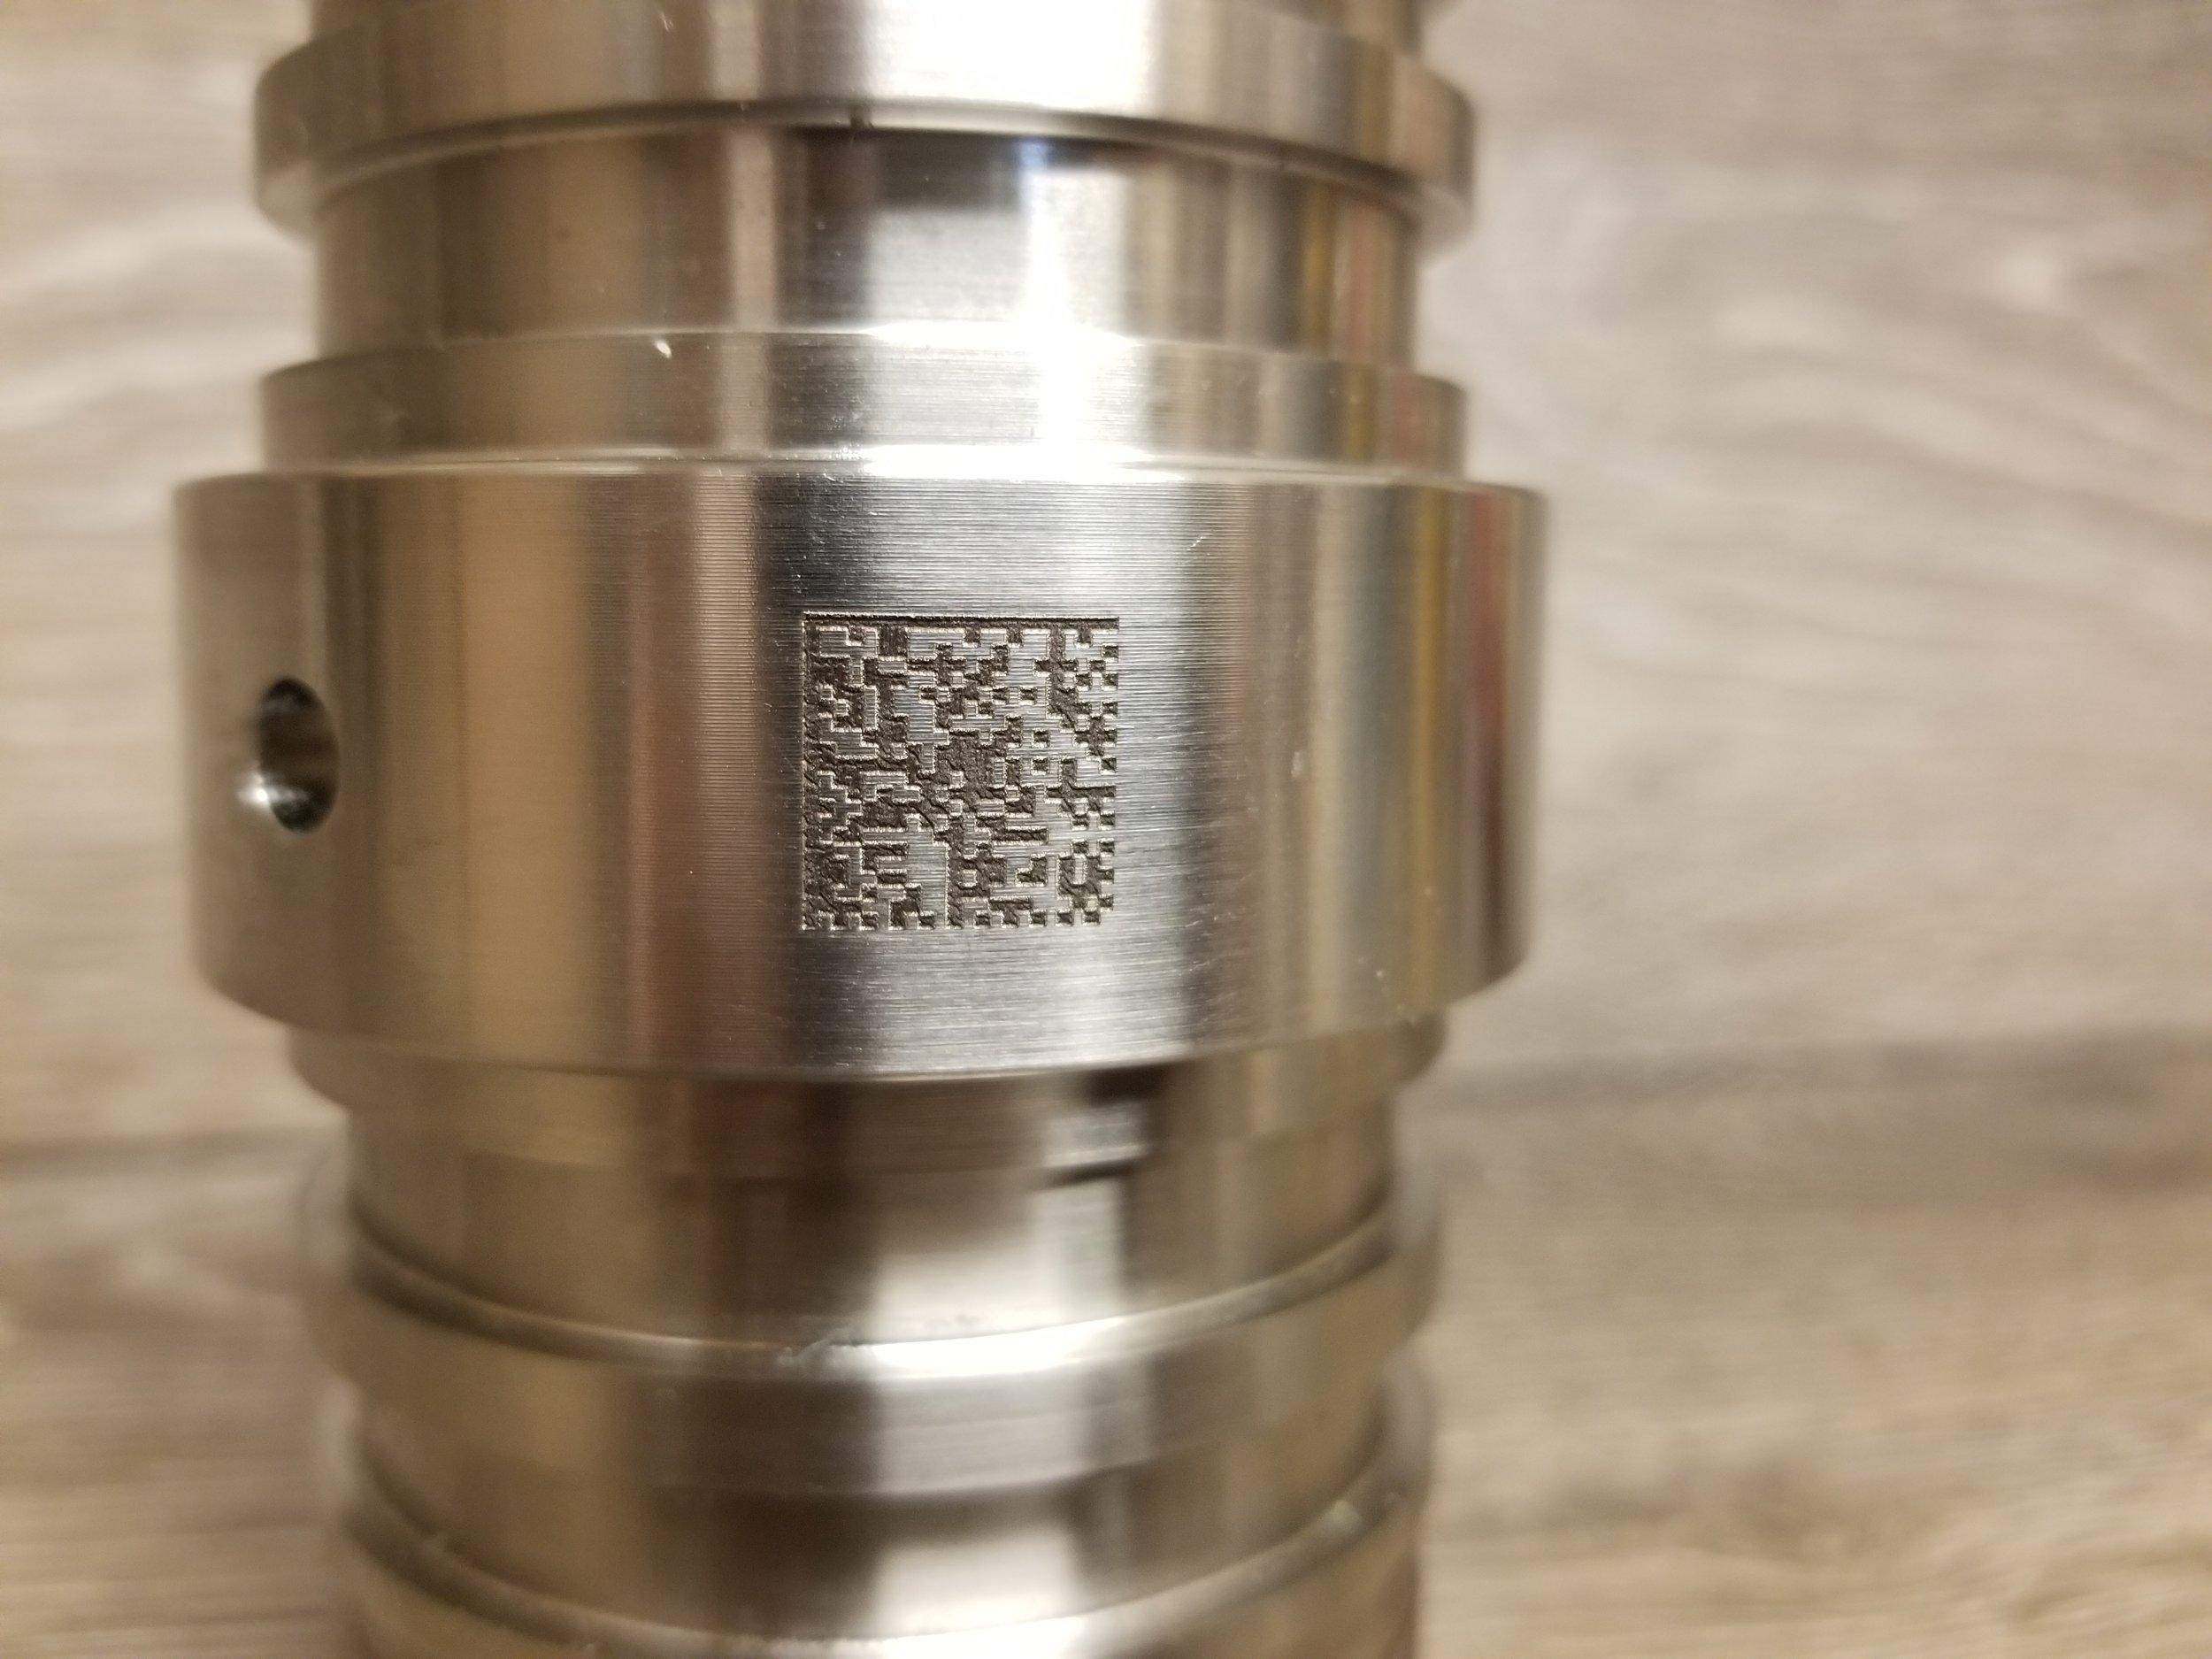 QR Code Engraving - Data Matrix Engraving - Part Labeling - Part Engraving - Industrial Projects from Engrave It Houston